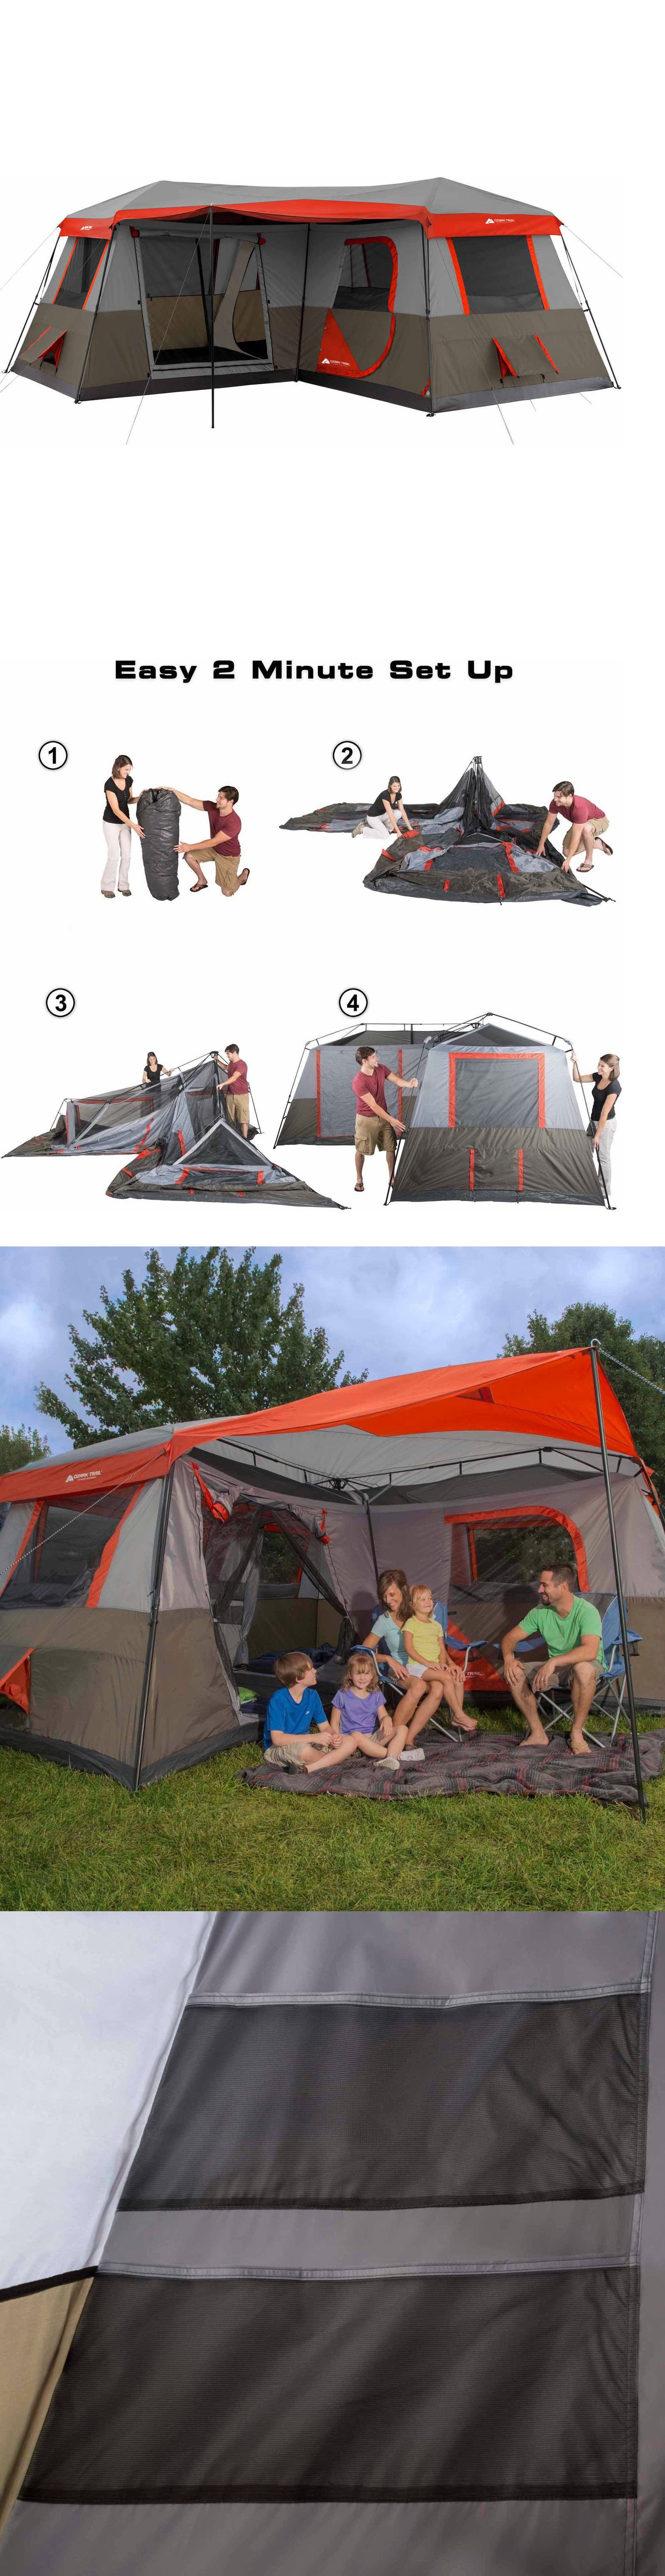 Tents 179010: Brand New Ozark Trail 12 Person 3 Room L Shaped Instant Cabin